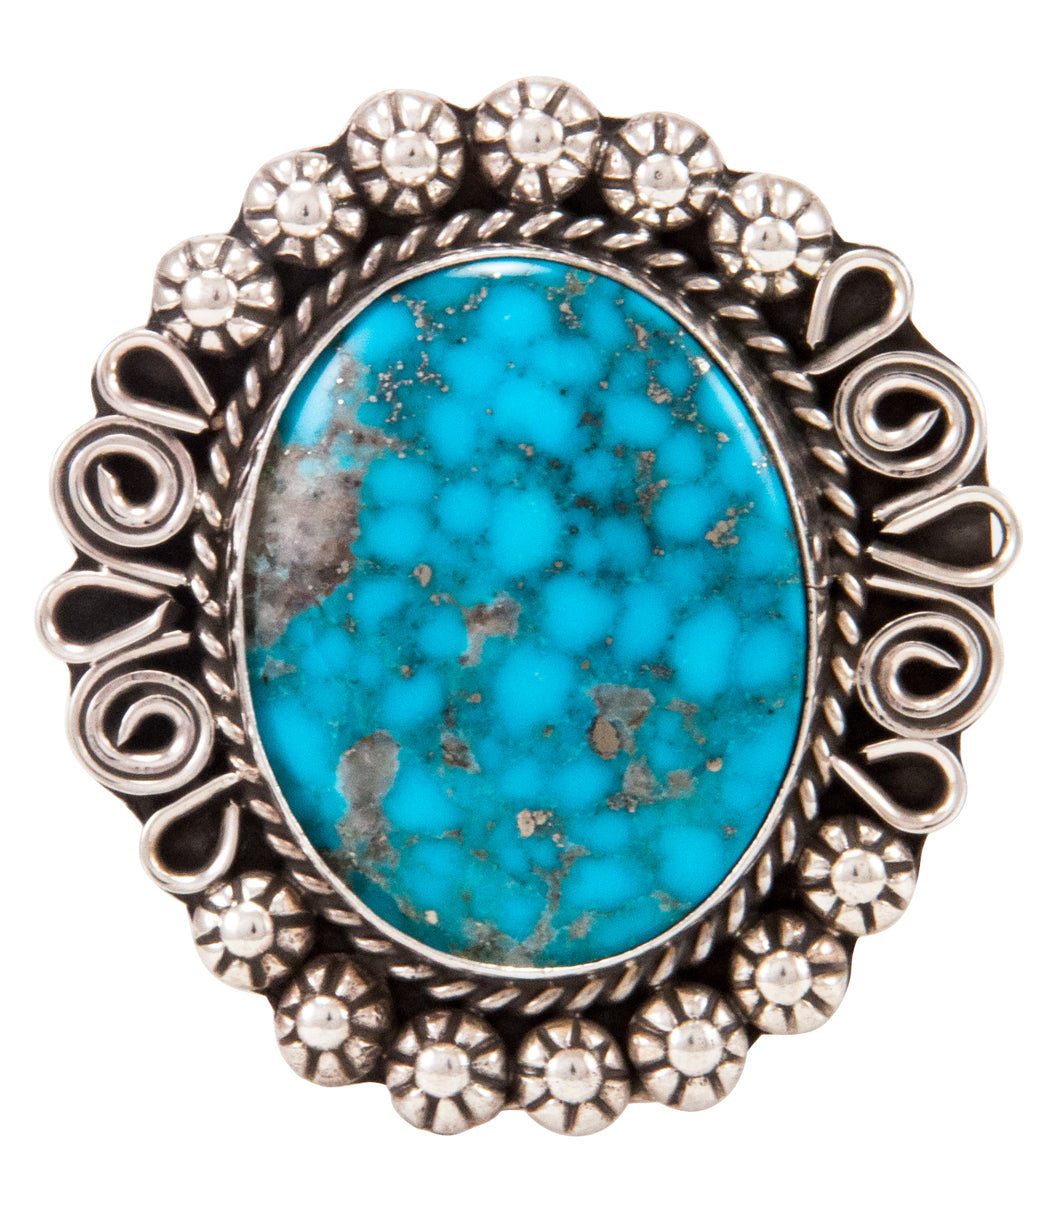 Navajo Native American Kingman Turquoise Ring Size 9 1/2 by B Lee SKU232968